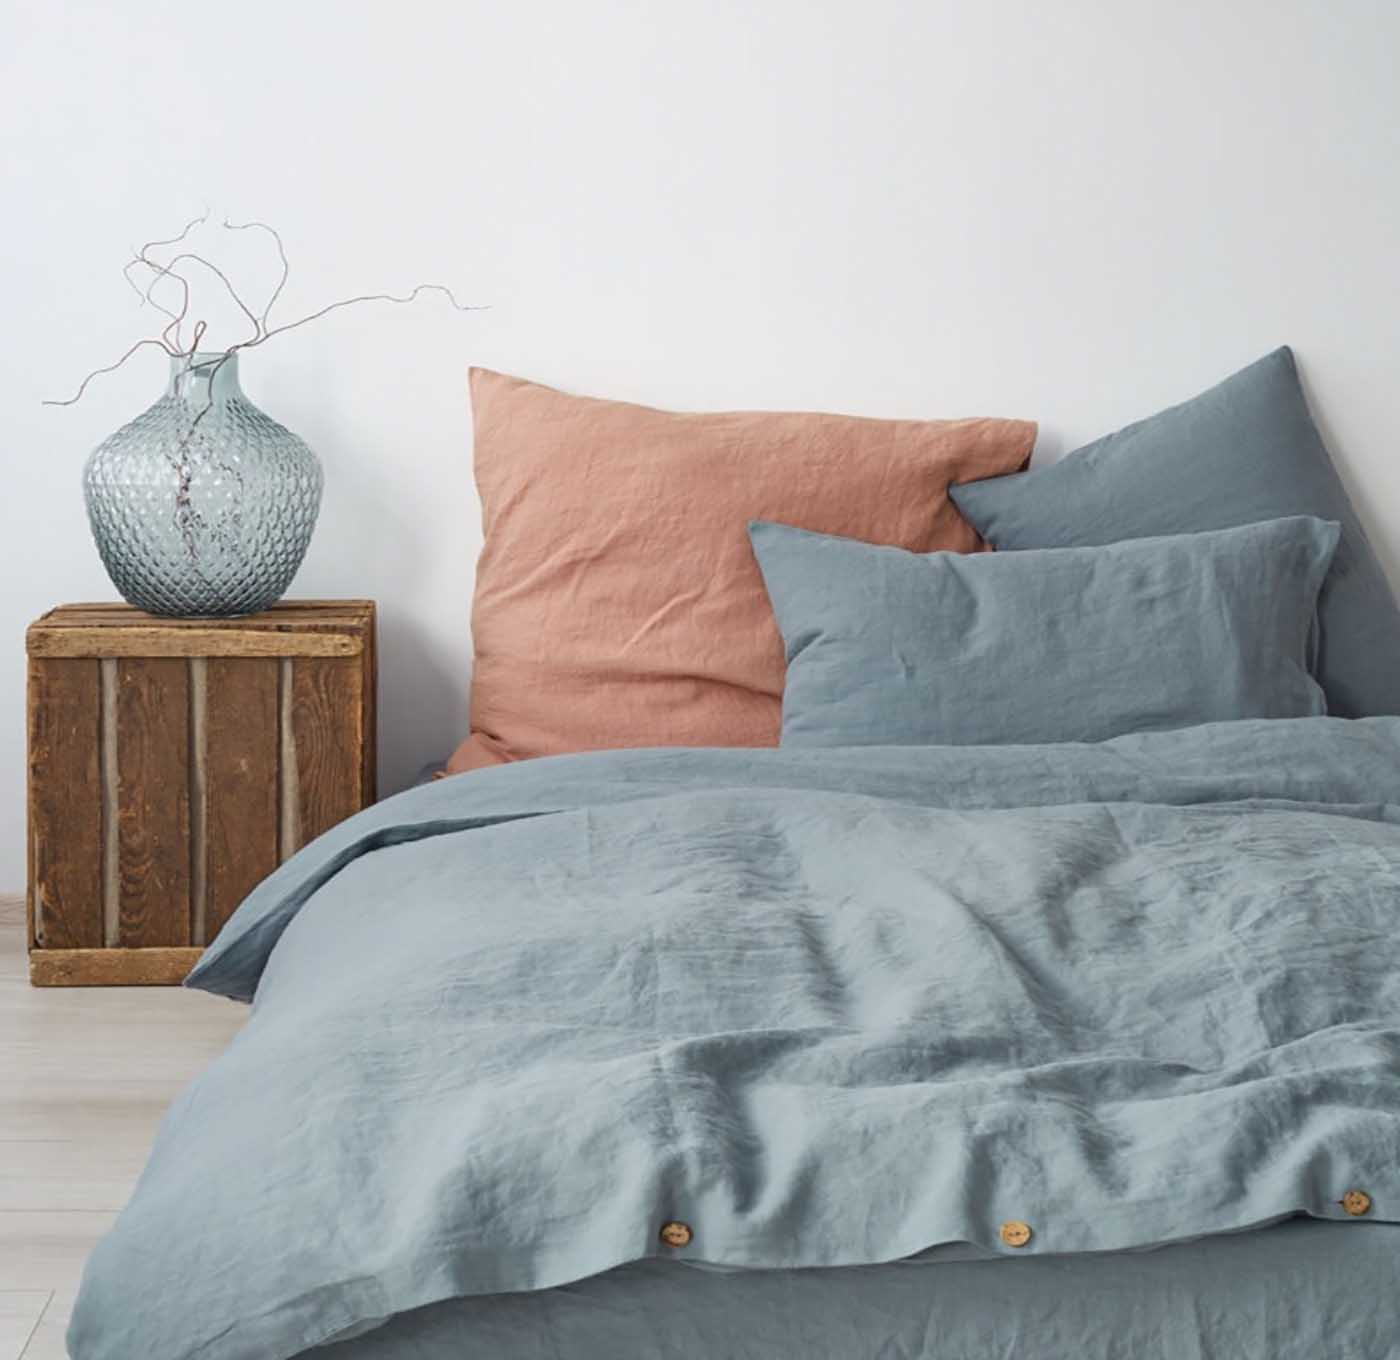 stoffkunde-leinen-blue-fog-washed-linen-bed-set-von-linen-tales-decohome.de_